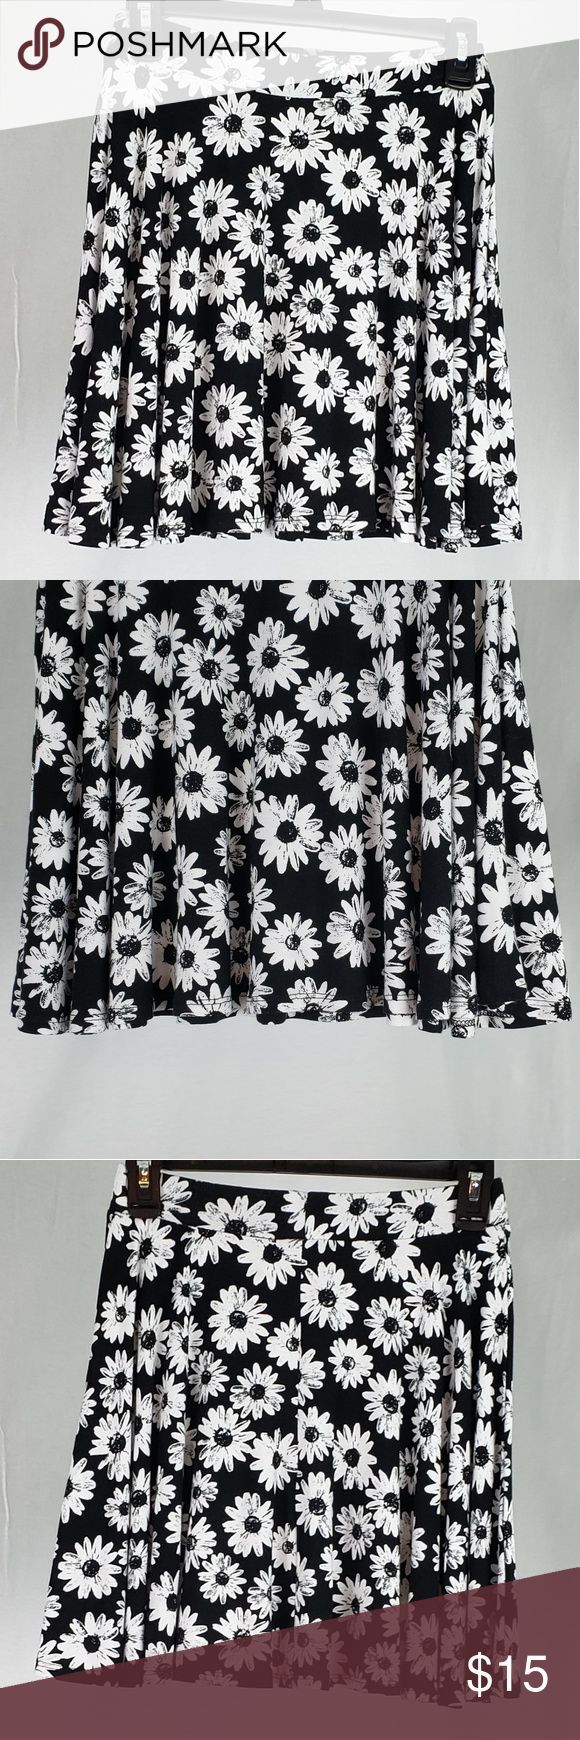 Authentic American Heritage Skater Skirt Black with White Daisy Flowers  Waist -... 2